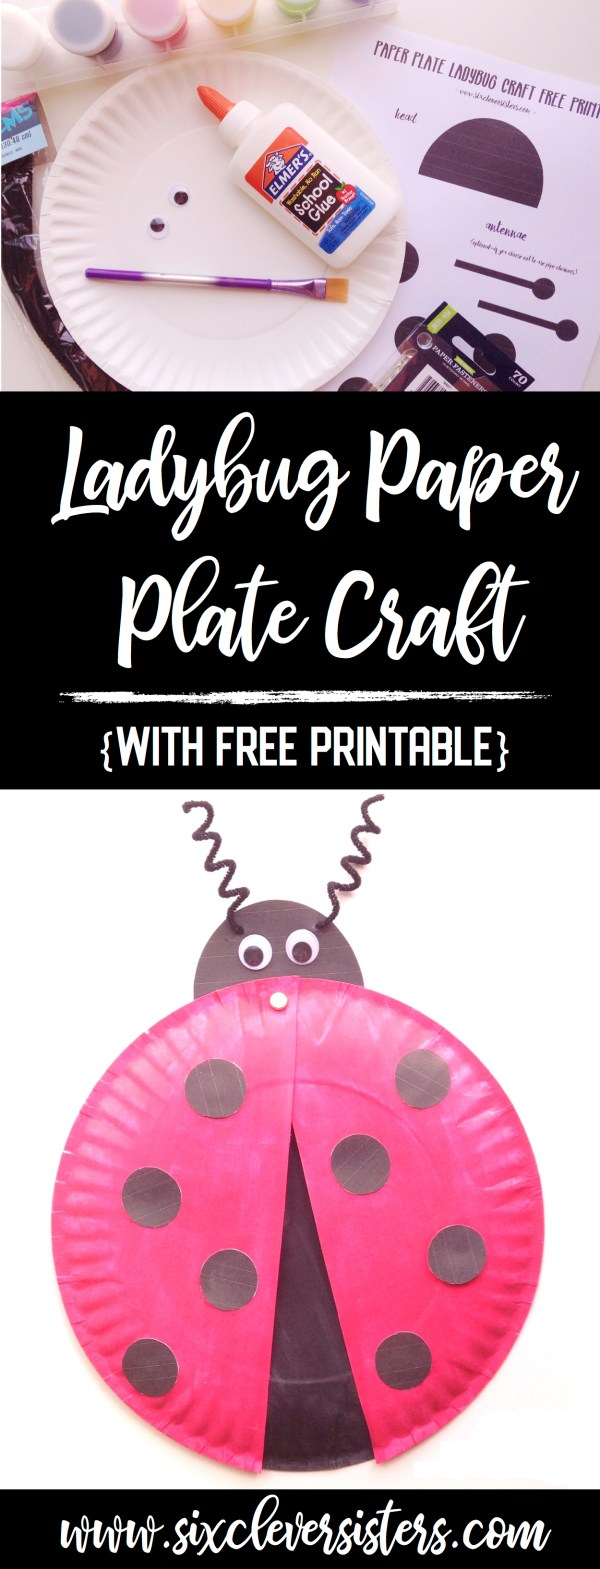 Paper Plate Crafts   Spring Crafts for Kids   Paper Plate Crafts for Toddlers   Paper Plate Crafts for Kids   Paper Plate Crafts Animals   Paper Plate Art Crafts   Ladybug Paper Plate Craft   Ladybug Paper Plate Art   Ladybug Paper Plate Project   Ladybug Paper Craft   Ladybug Paper Plate Craft for Kids   Spring Crafts for Kids Easy   This easy paper plate craft includes a free printable!